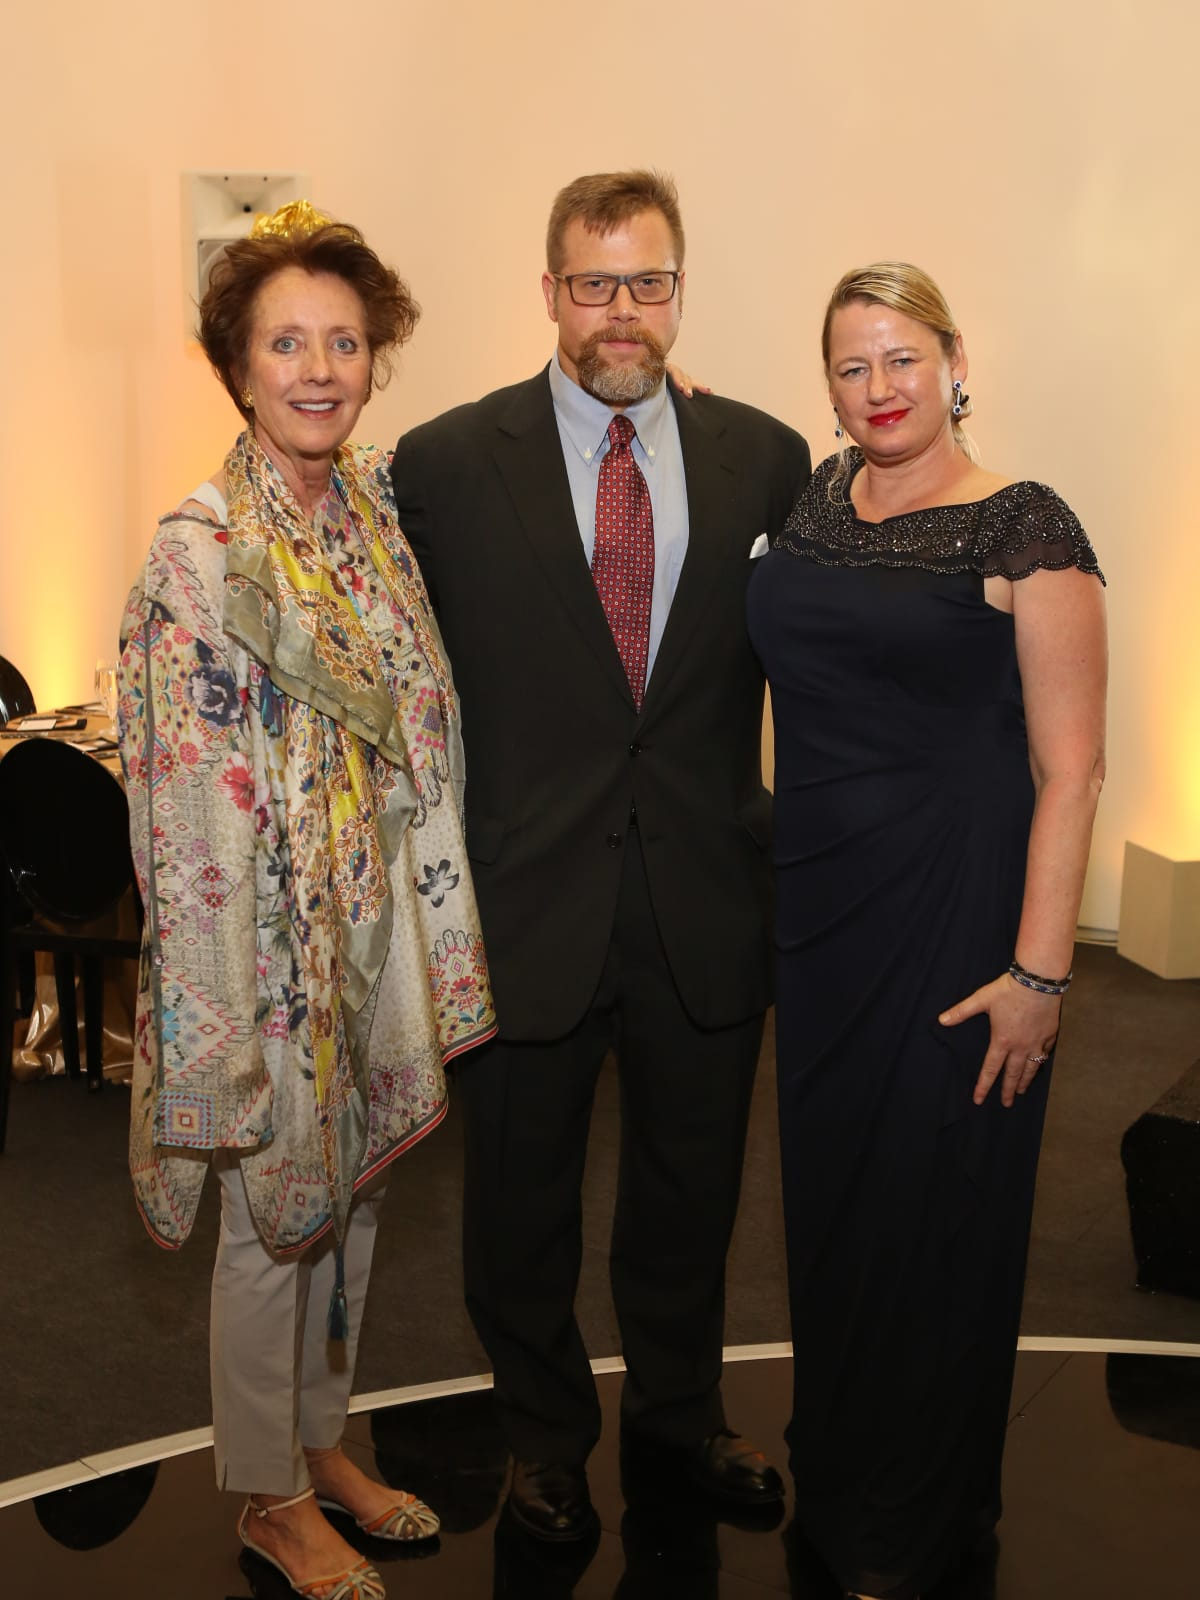 Blaffer Galleria Gala, April 2016, Anne Owen, Erik Arneberg, Ingrid Arneberg